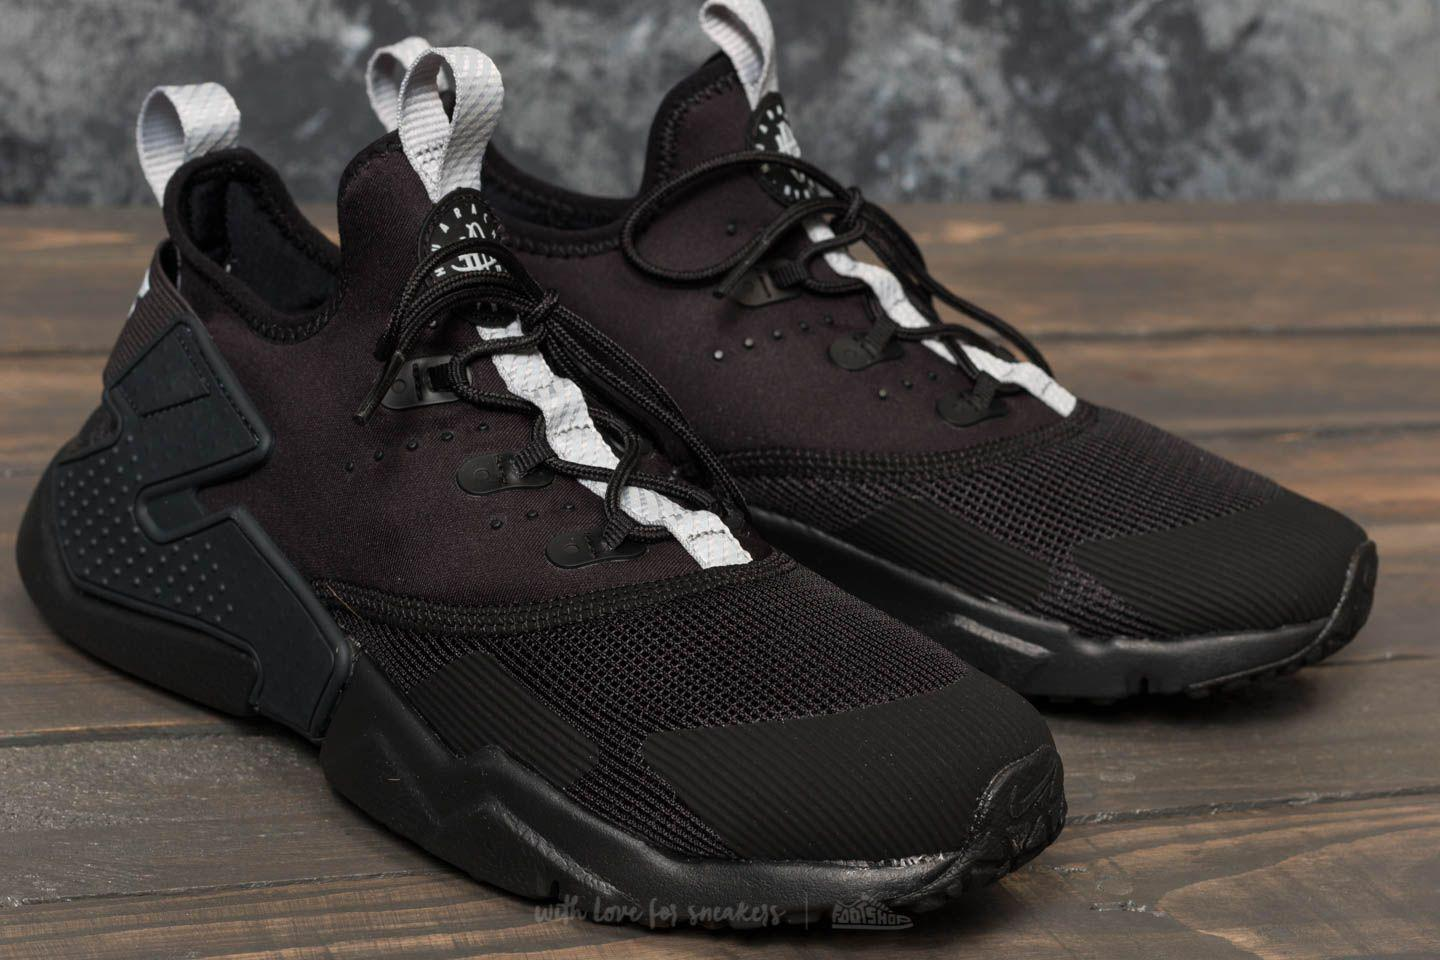 164d1713e8b ... inexpensive lyst nike huarache drift gs black wolf grey anthracite in  gray 13157 89e9d